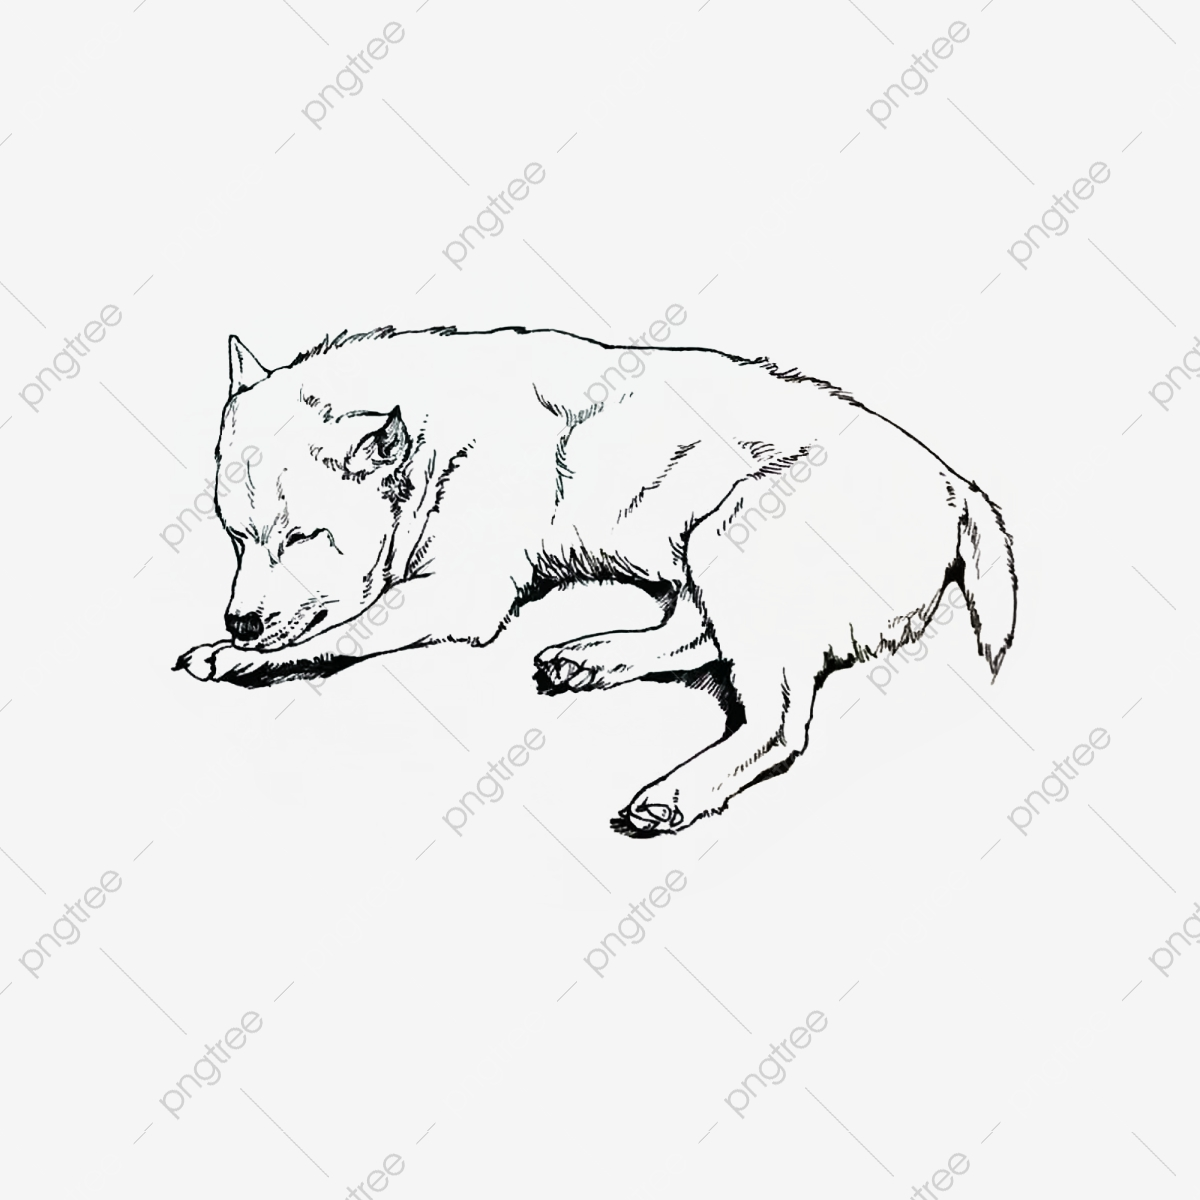 Realistic Dog Linear Sketch Wind Animal Element Puppy Realistic Style Sketching Animals Png Transparent Clipart Image And Psd File For Free Download